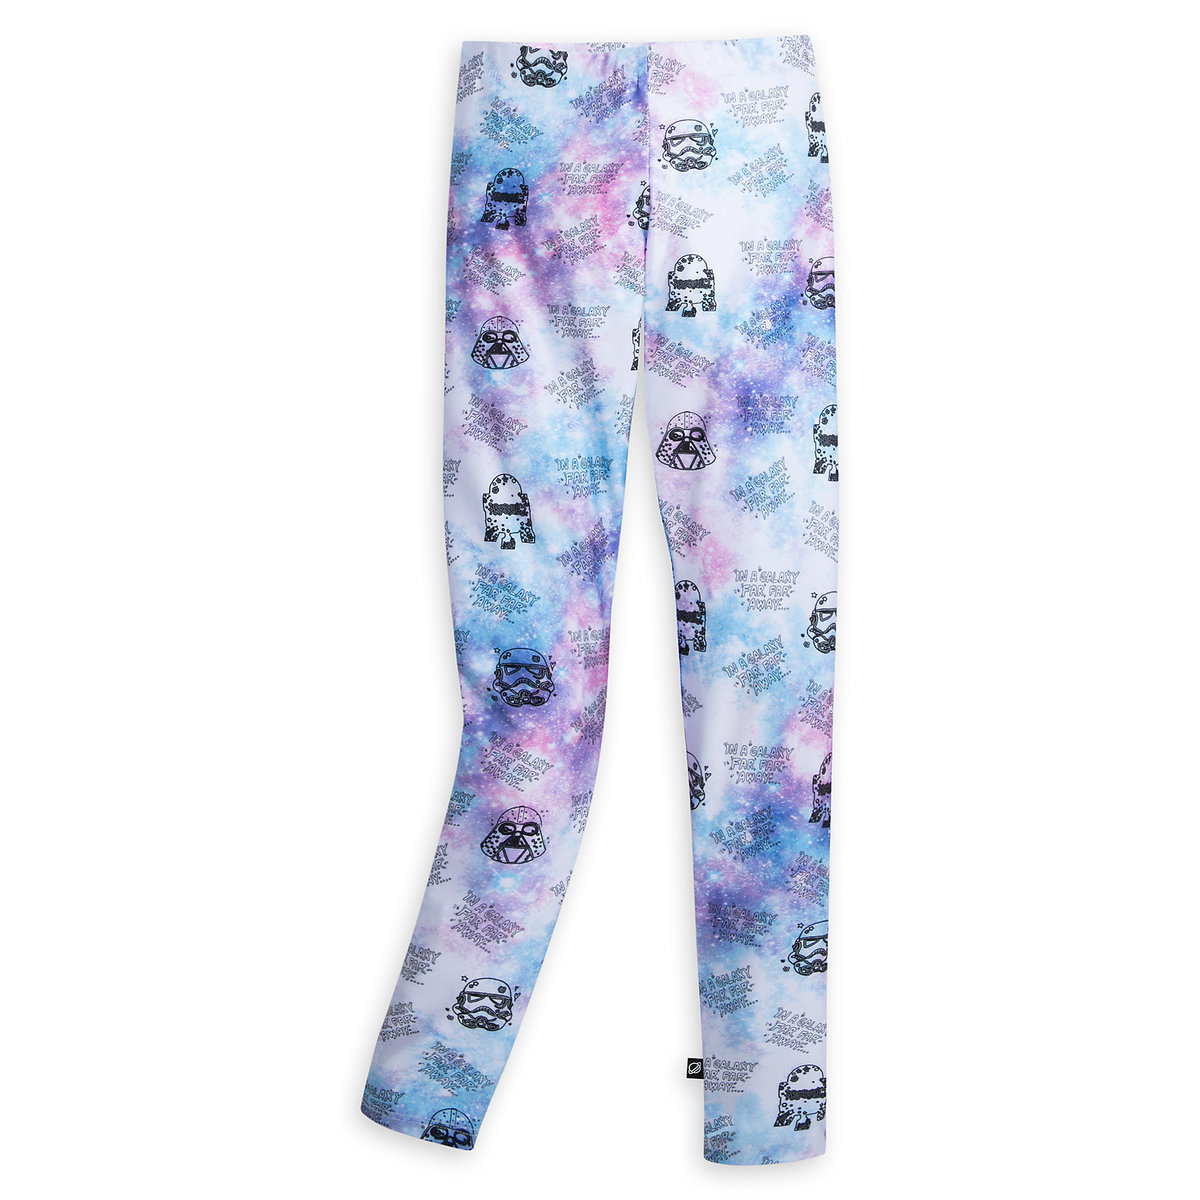 8ed7f2617bf4d Product Image of Star Wars Galaxy Leggings for Tweens by Terez # 1